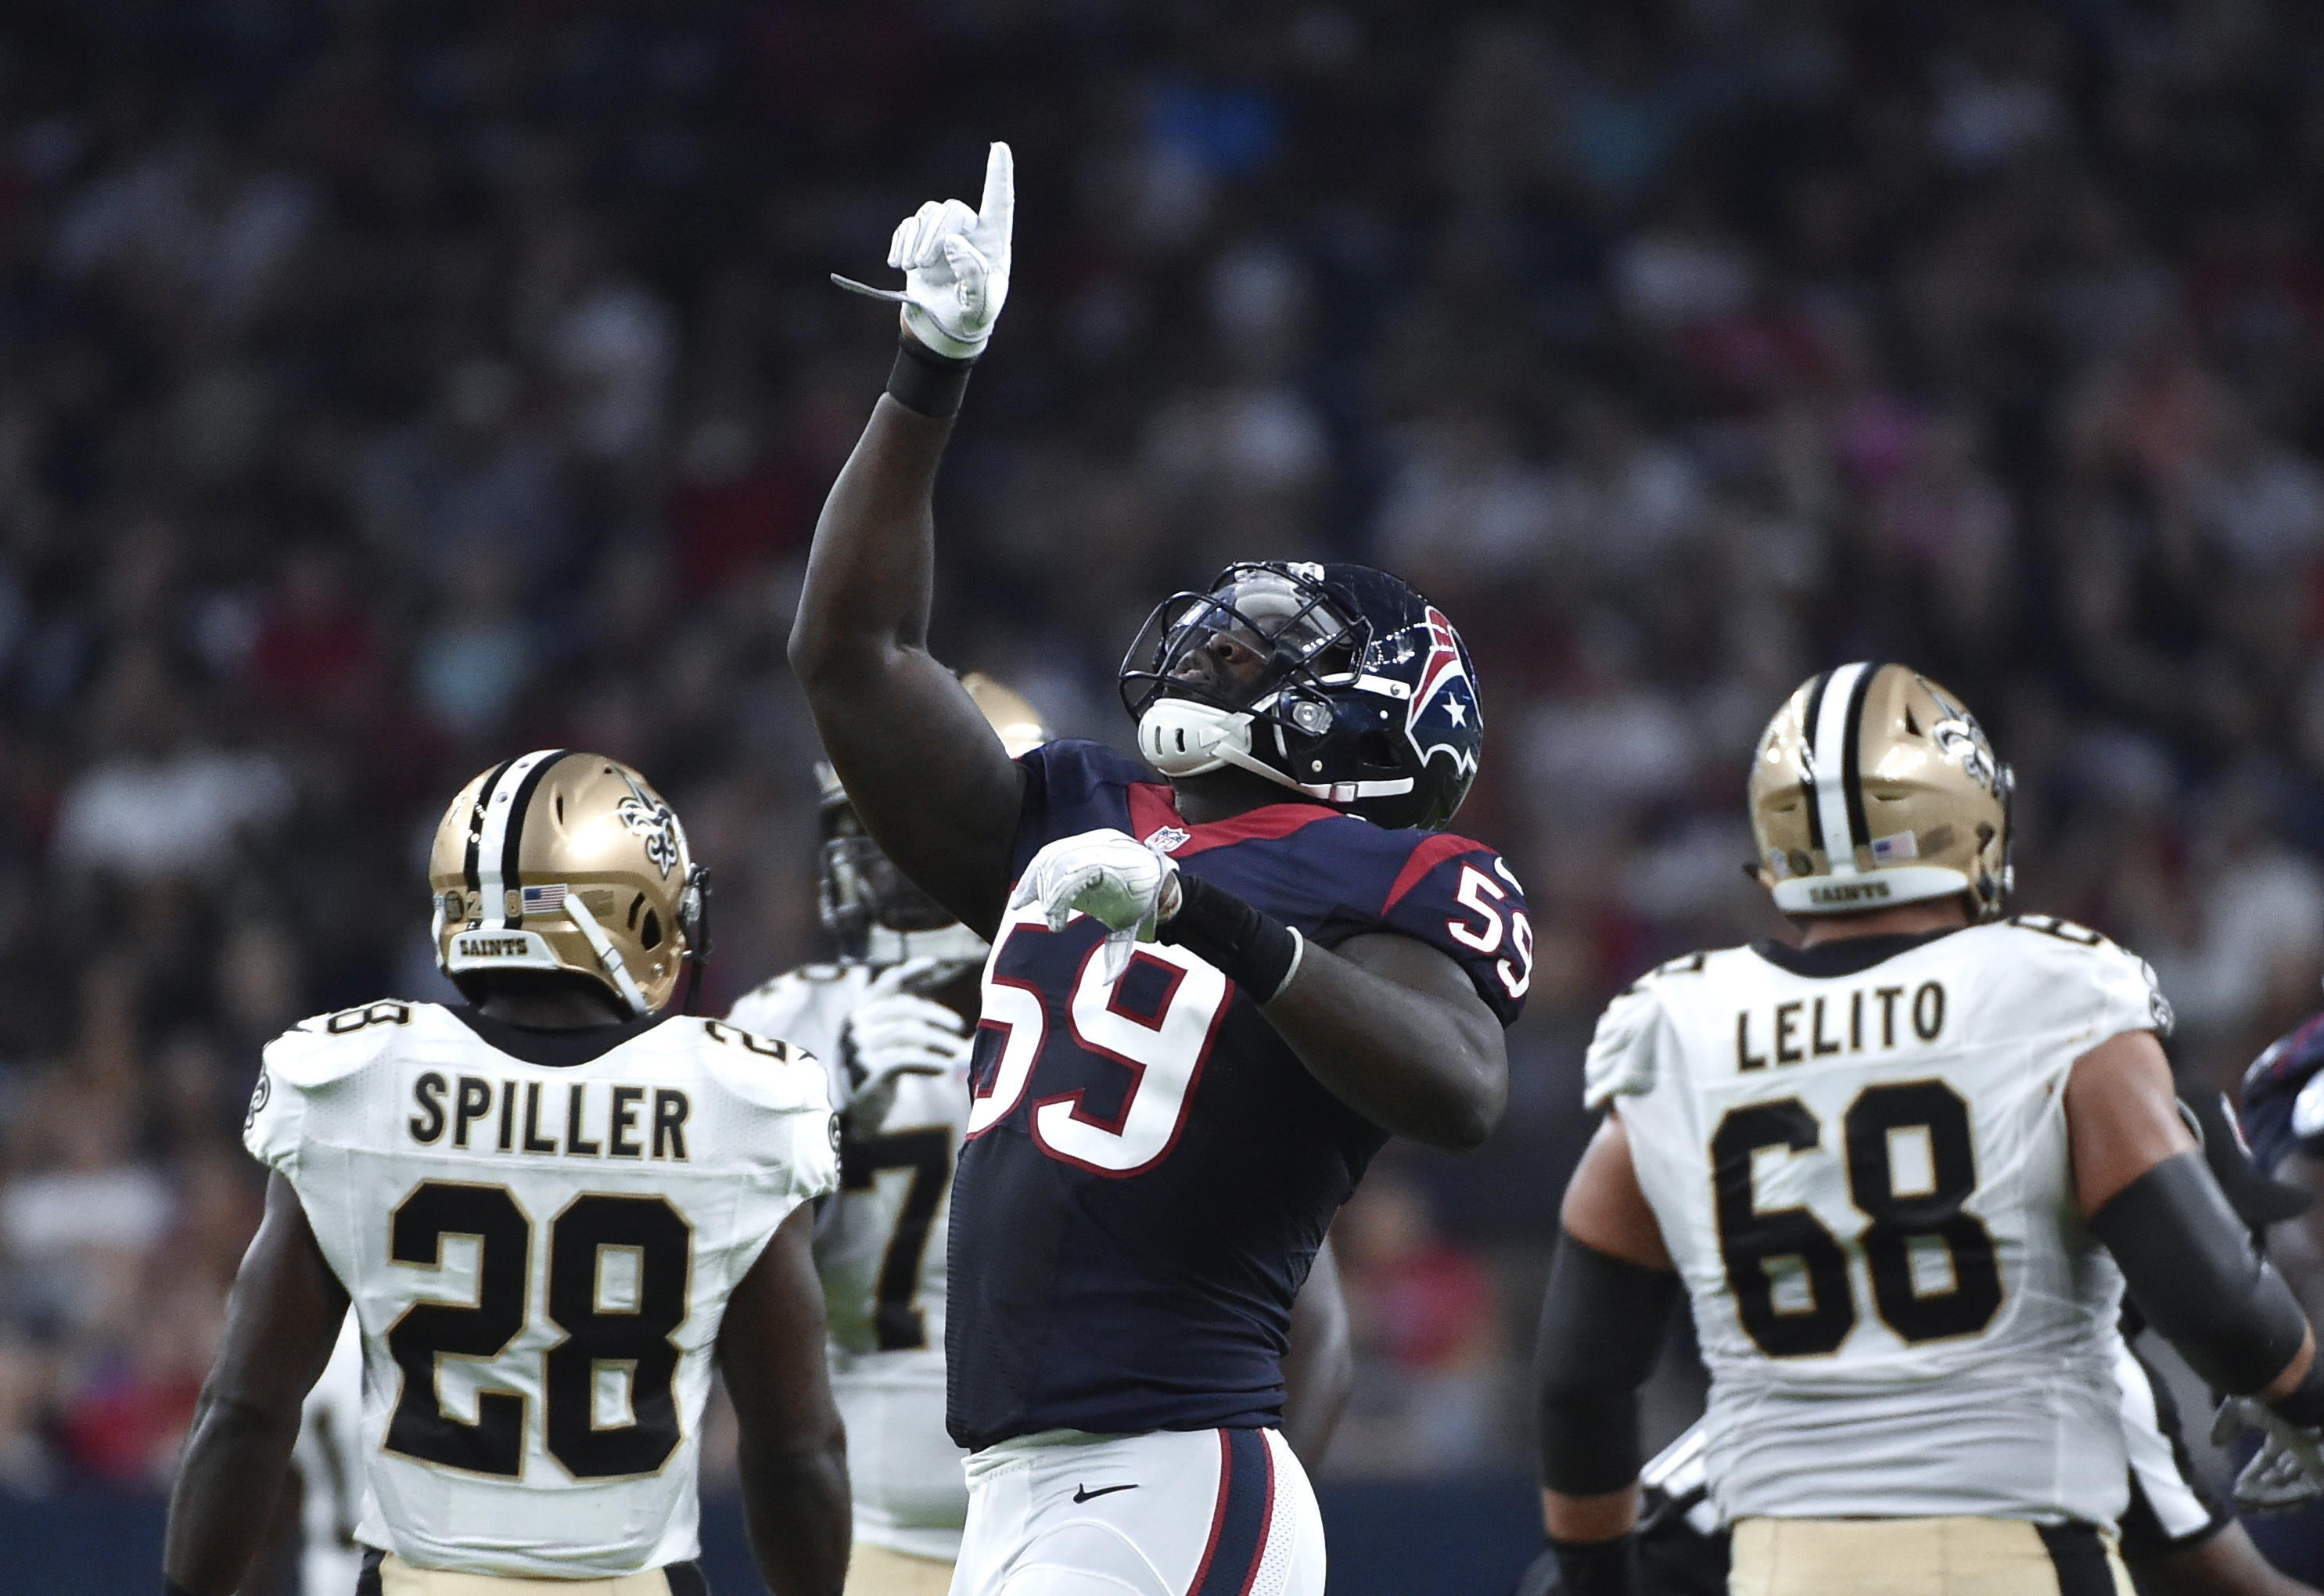 Houston Texans outside linebacker Whitney Mercilus (59) celebrates applying pressure to New Orleans Saints quarterback Drew Brees in the first half of an NFL preseason football game in Houston, Saturday, Aug. 20, 2016. (AP Photo/Eric Christian Smith)